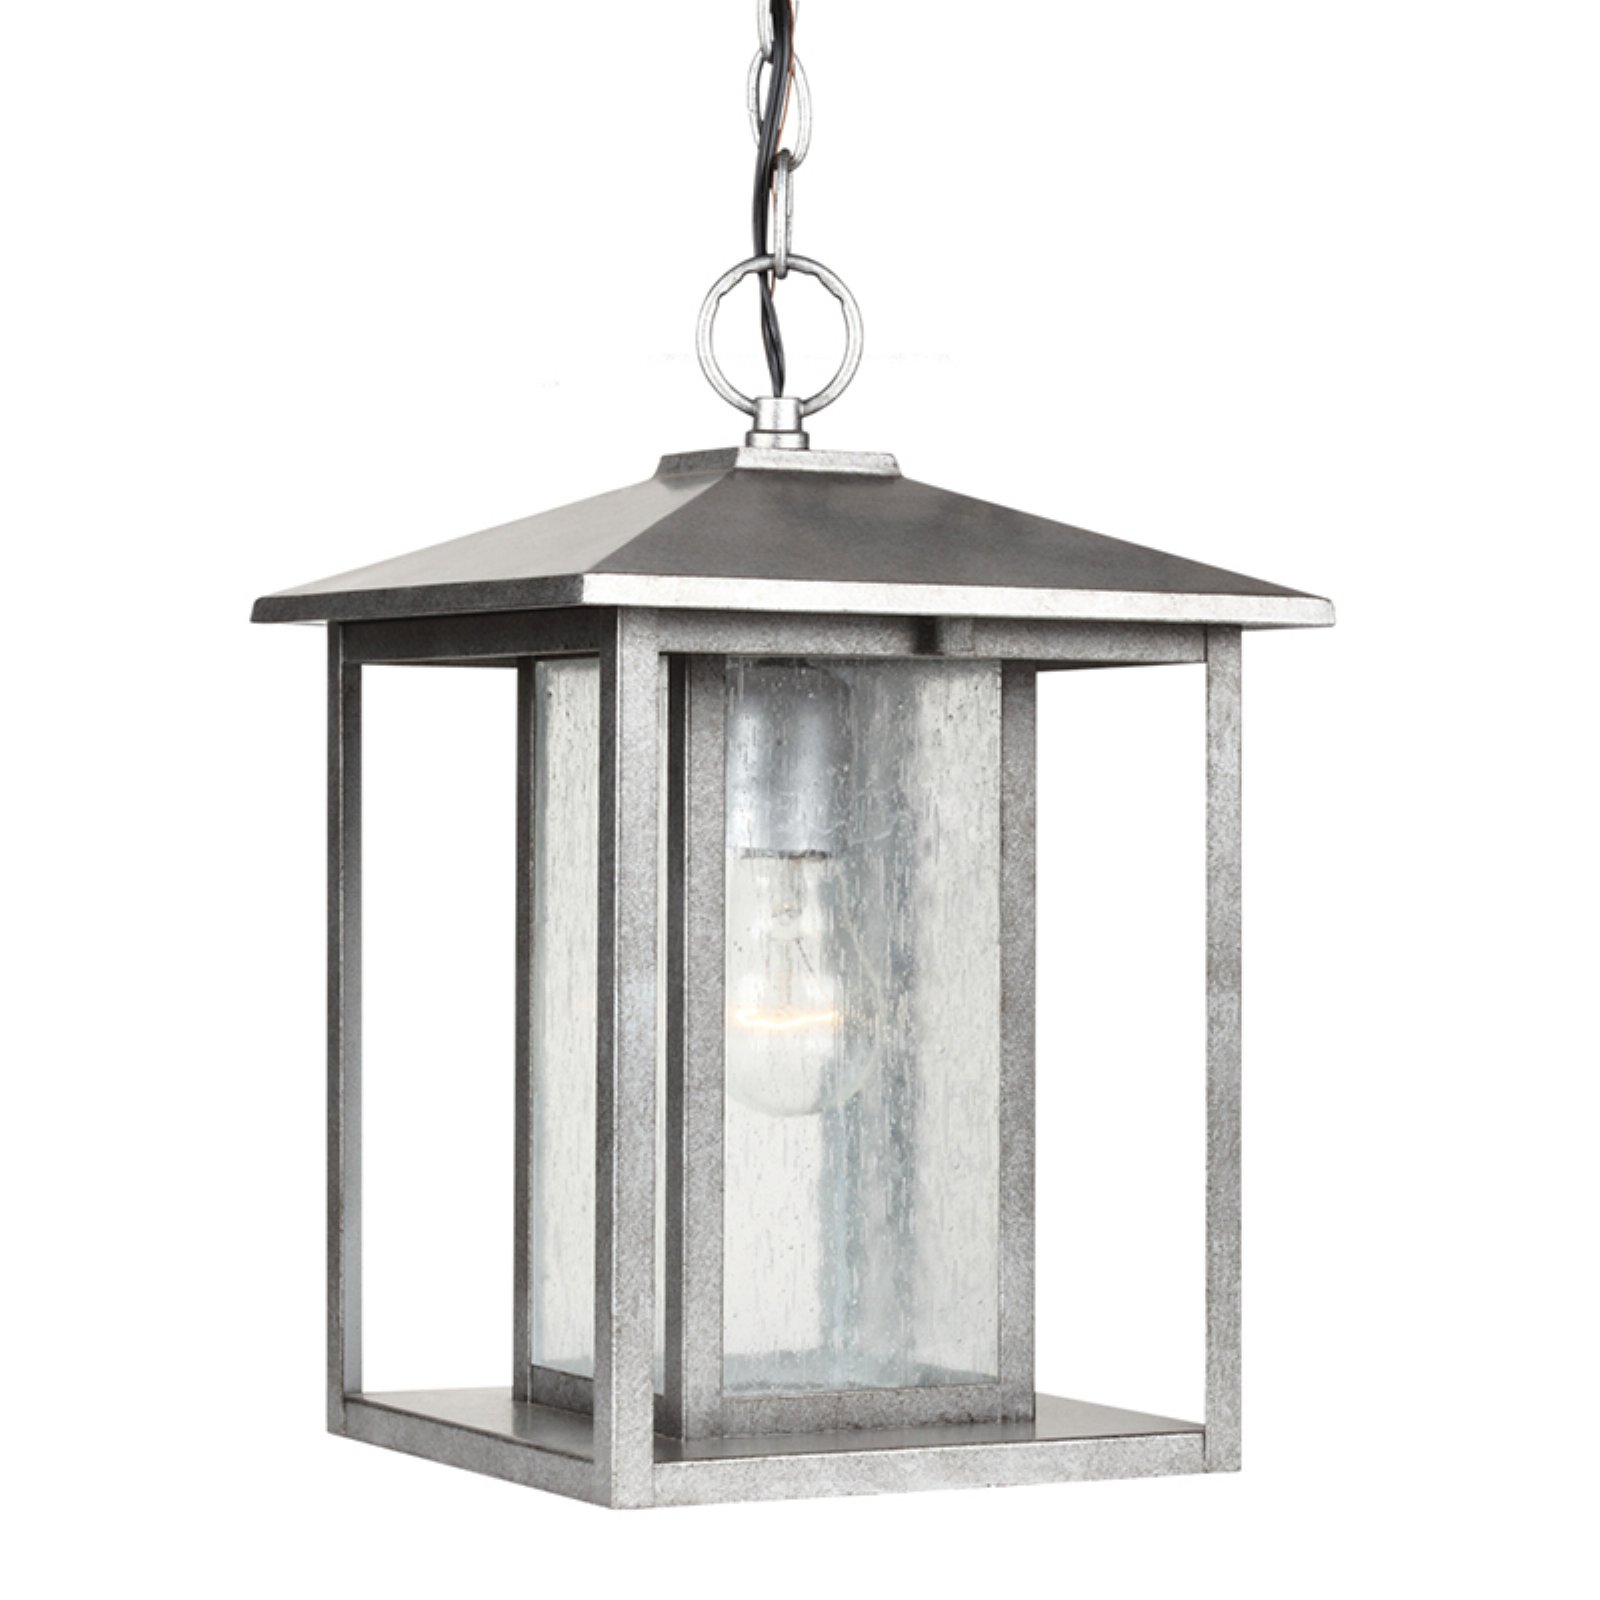 Sea Gull Lighting Hunnington 1-Light Outdoor Pendant - 13.75H in. Weathered Pewter